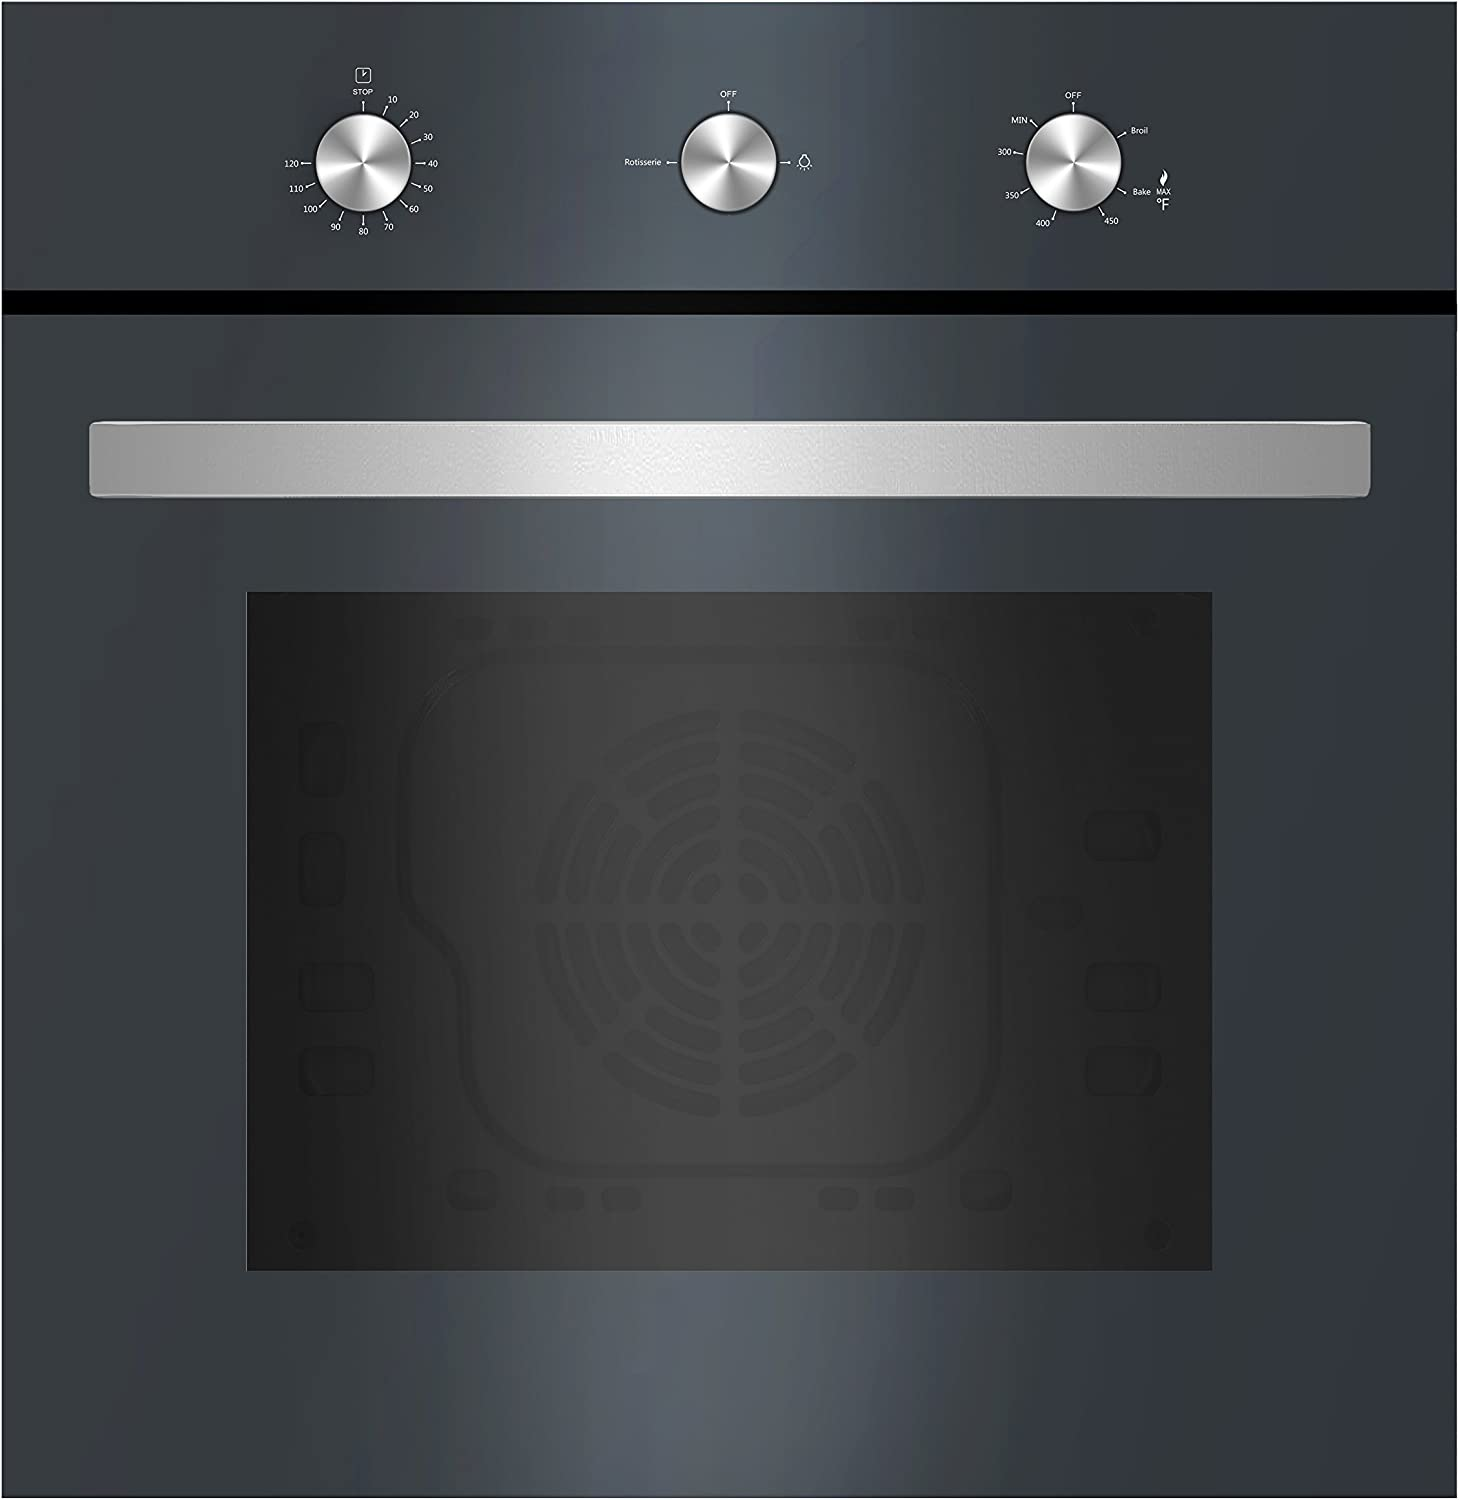 Empava 24XWOD03 24 Inch Under-Counter Gas Single Wall Oven with Rotisserie and Broil Function in Tempered Glass, D03